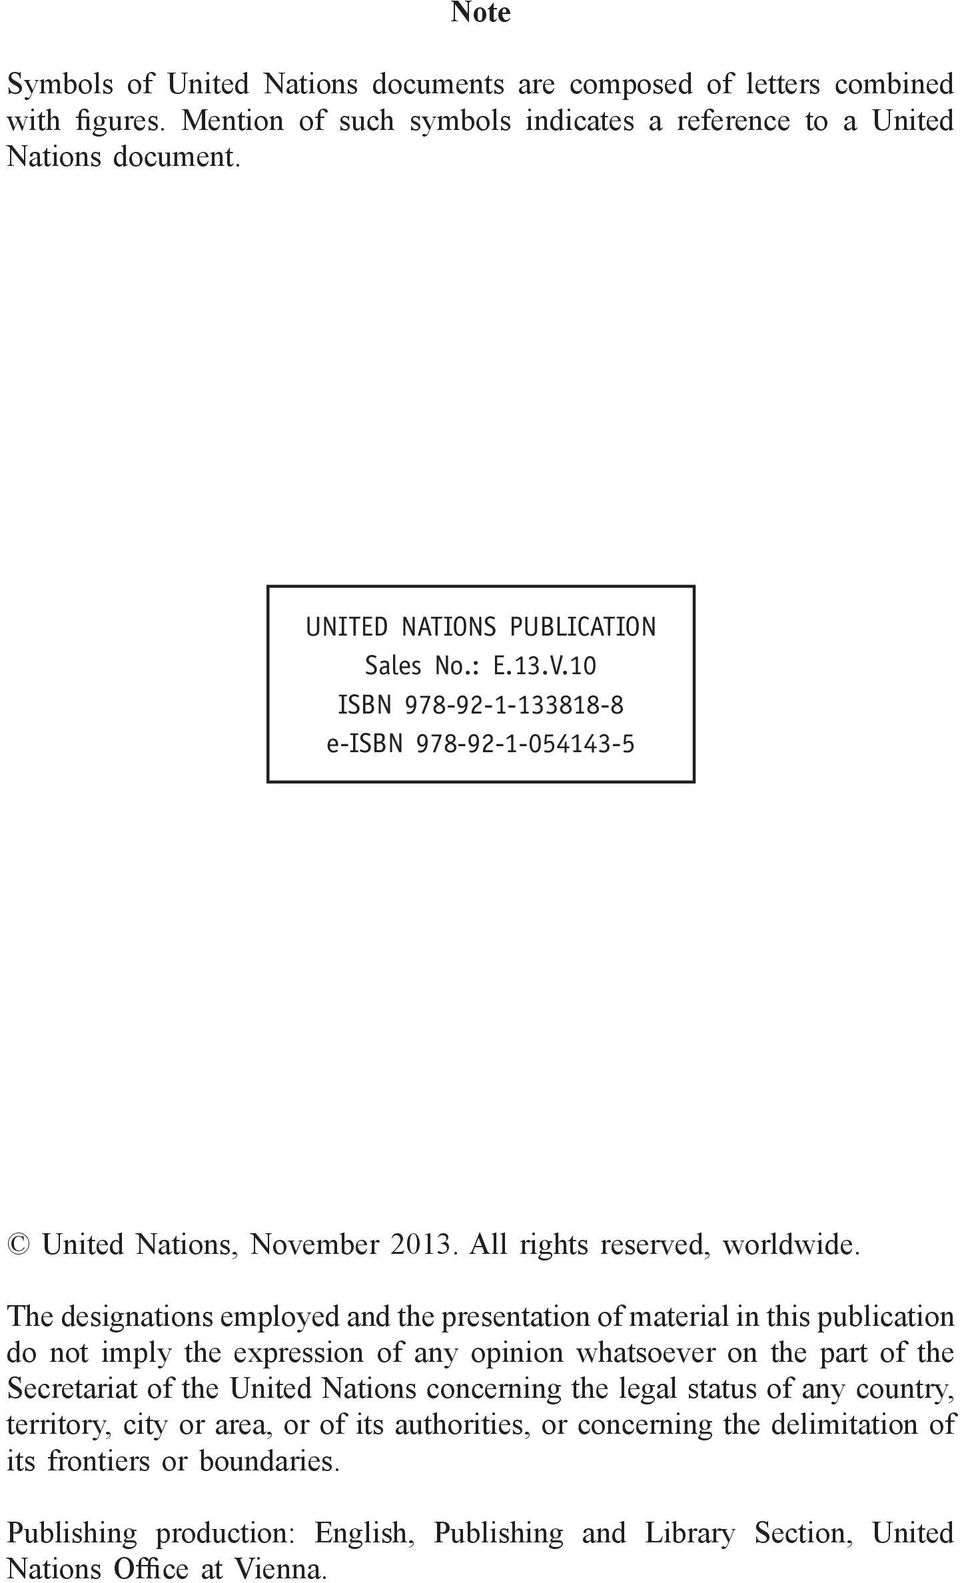 The designations employed and the presentation of material in this publication do not imply the expression of any opinion whatsoever on the part of the Secretariat of the United Nations